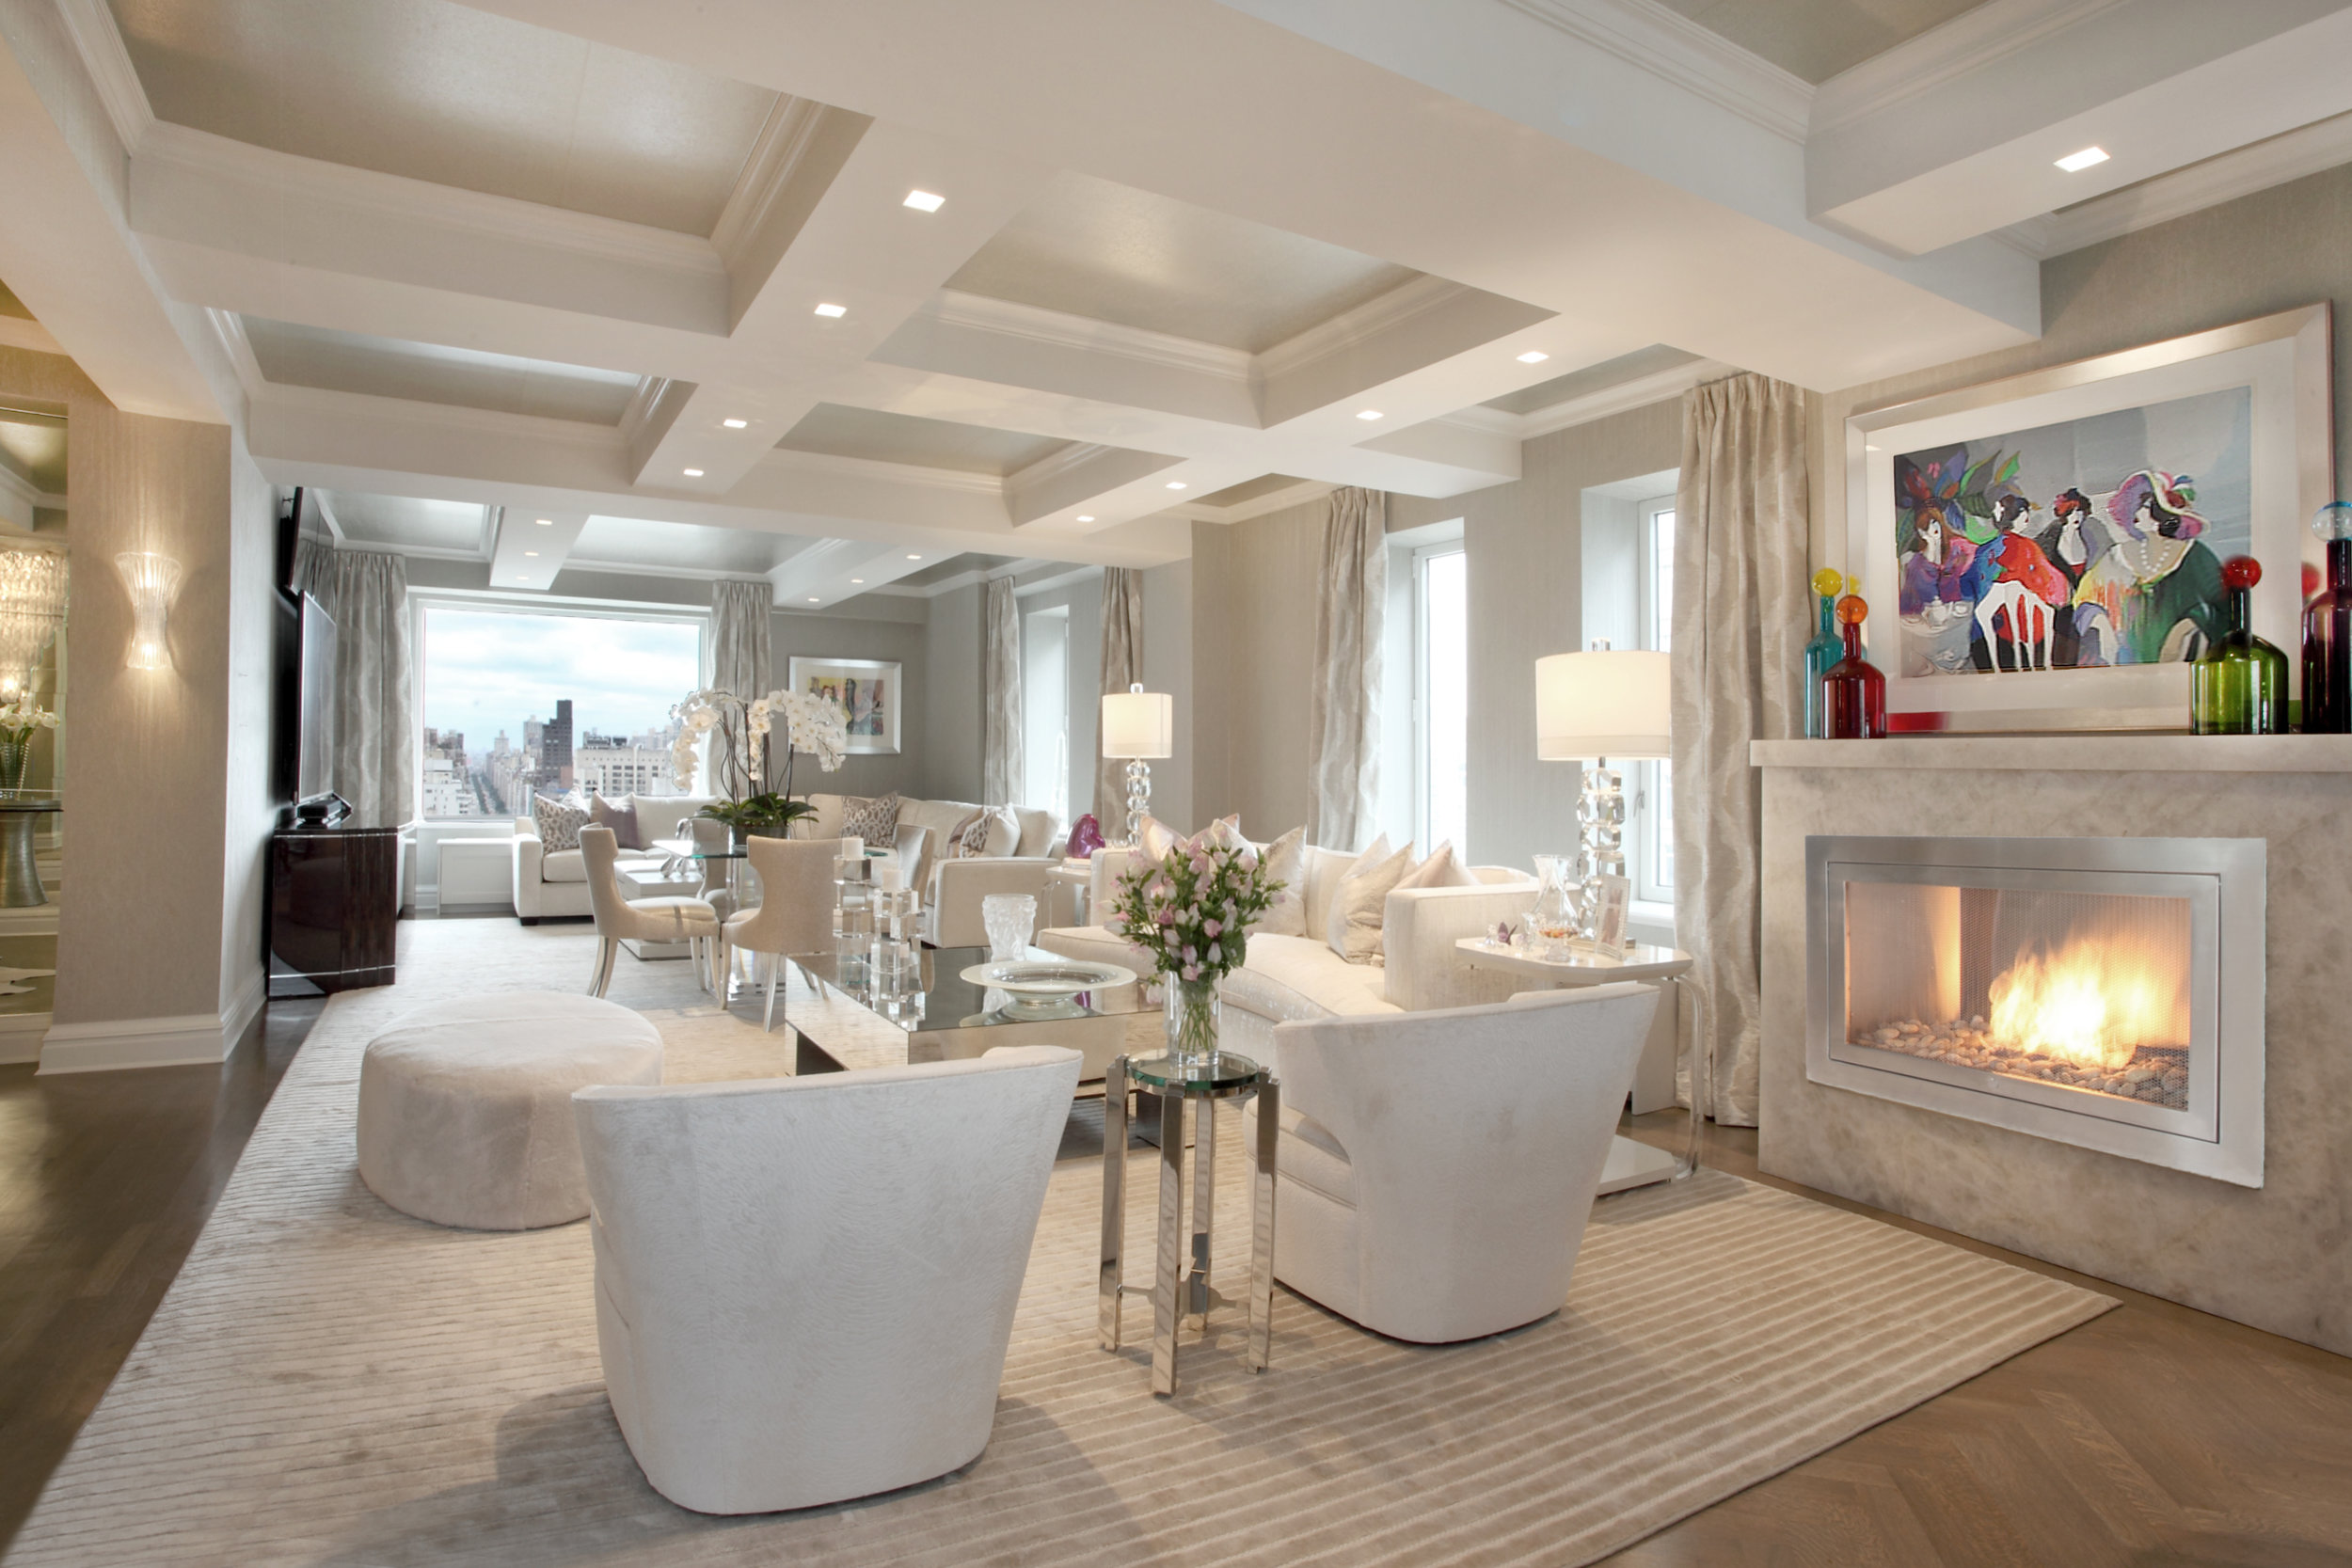 Project by Patricia Bonis Interiors & Stanley Michael & Co. Inc.